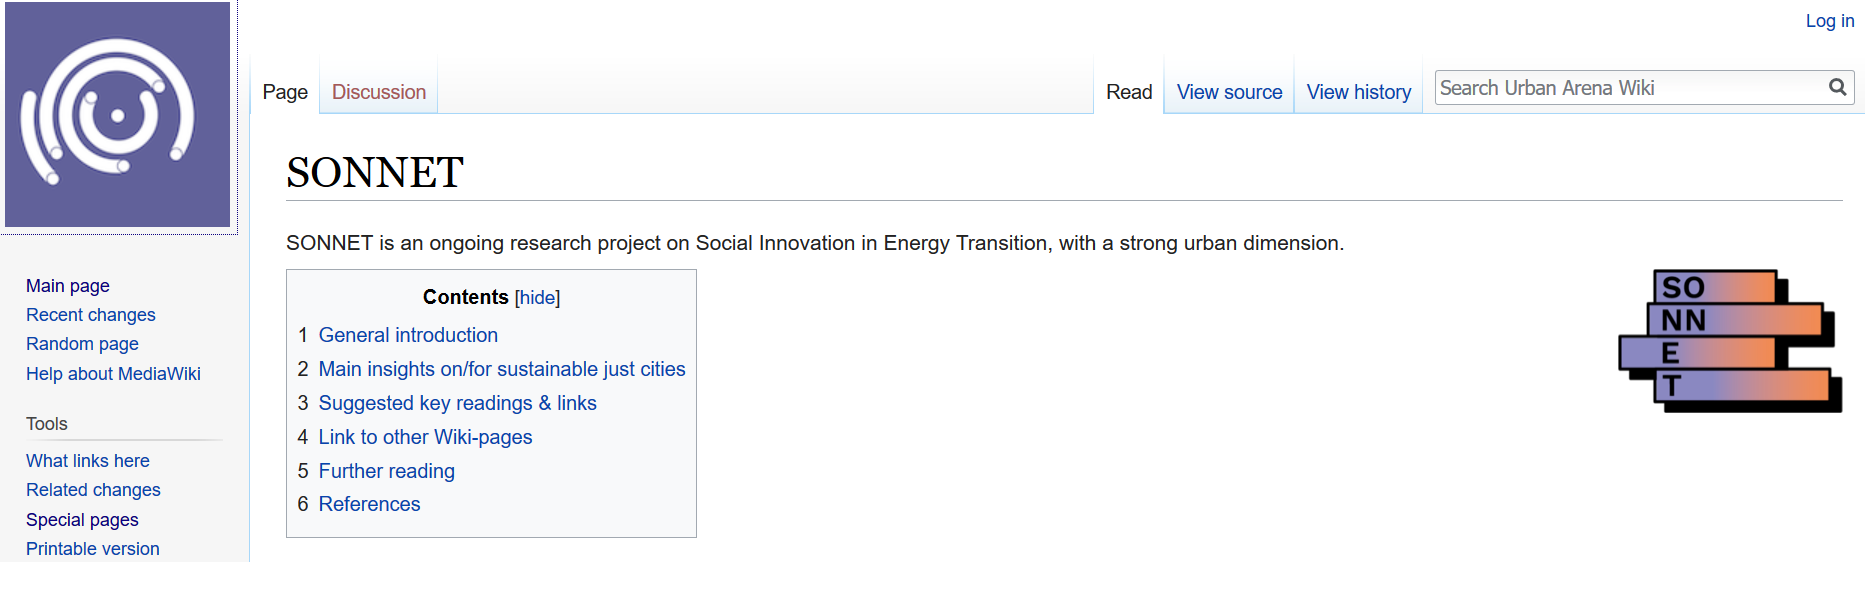 SONNET Is Featured As Part Of The Wiki On Sustainable Just Cities